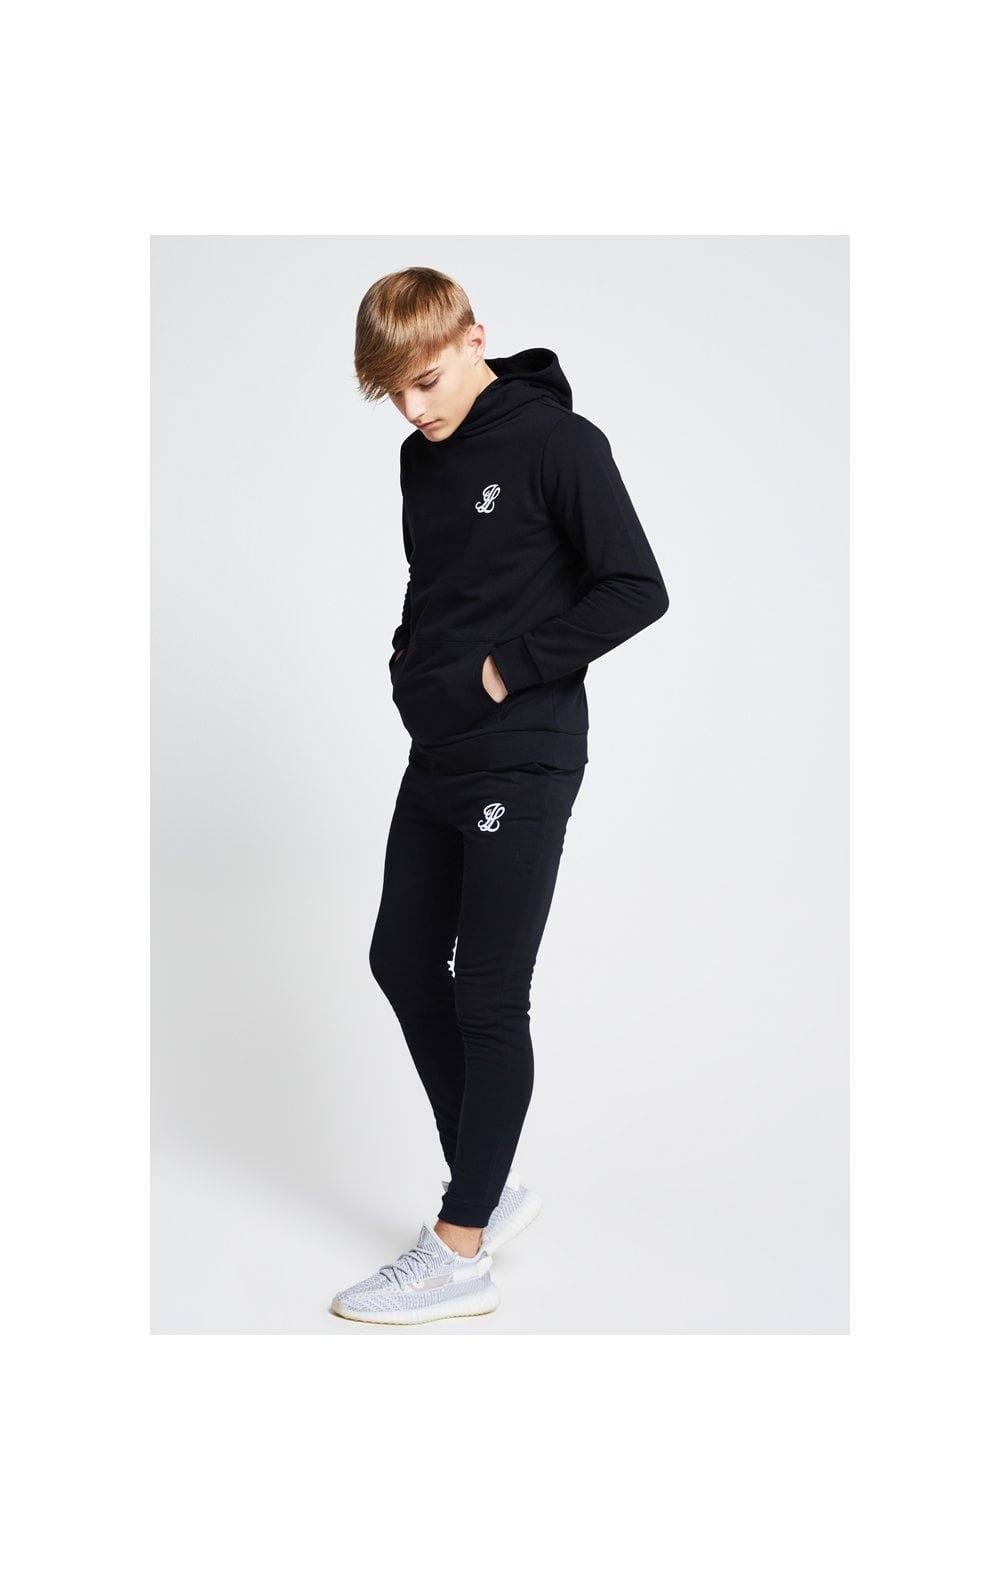 Illusive London Joggers – Black (5)